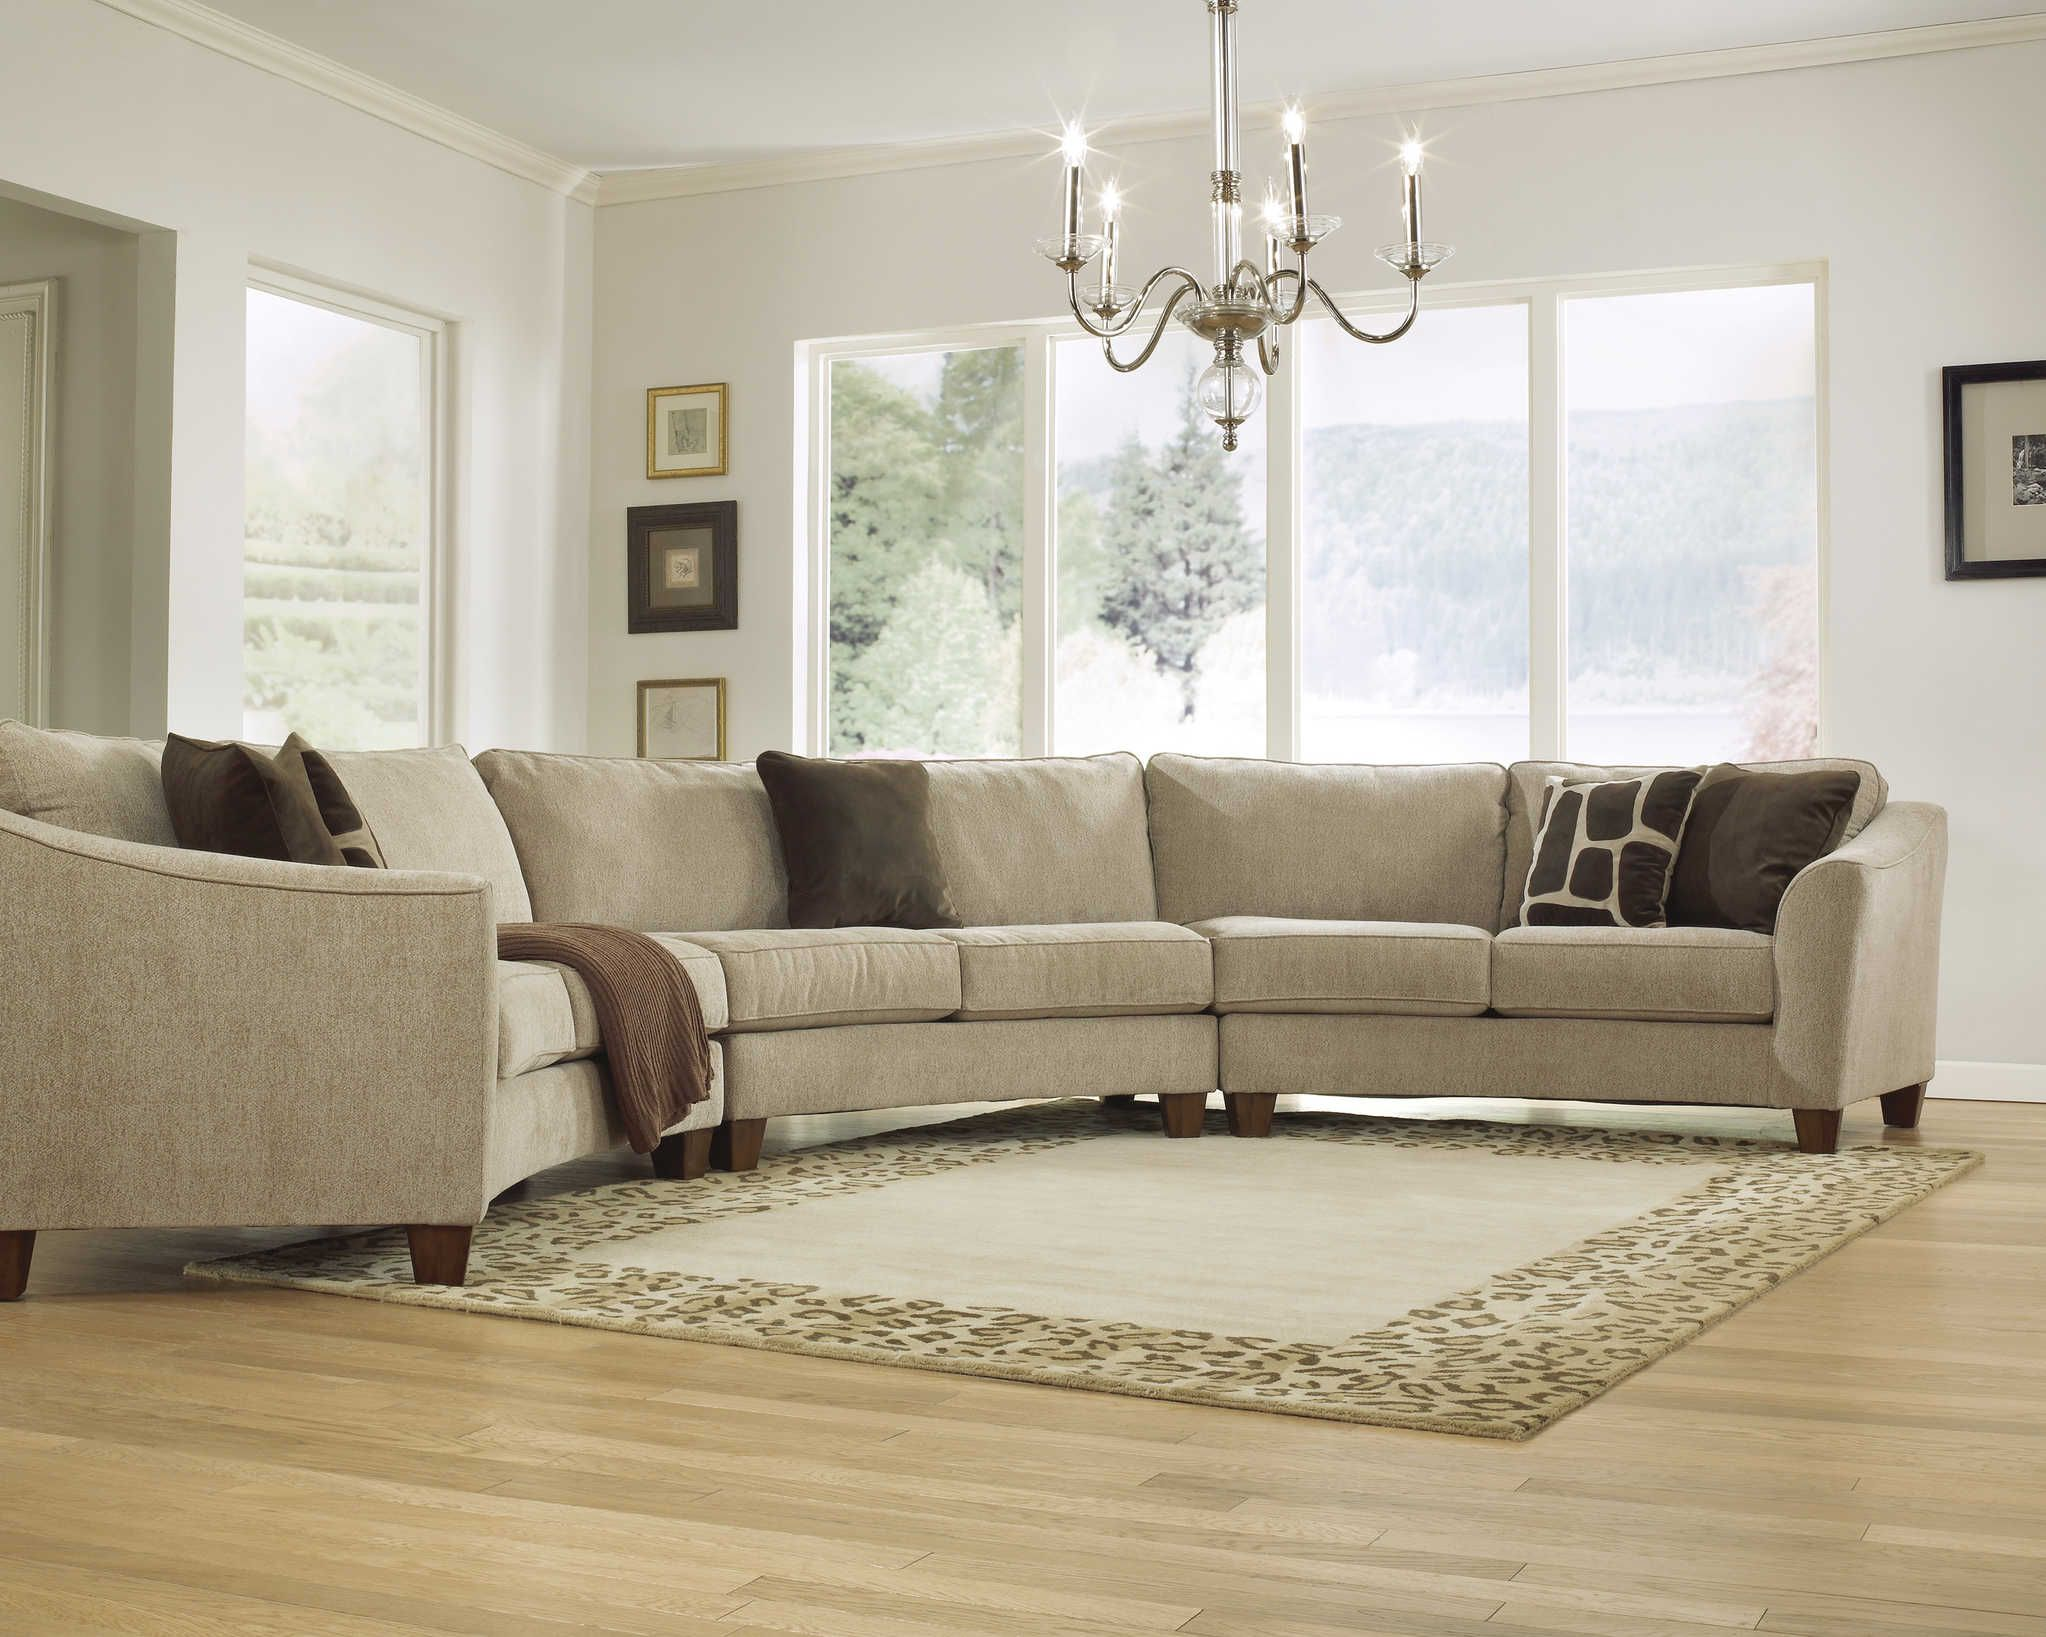 Living Room Designs With Sectionals Captivating 2959Curvaceous Beauty  Curved Sectional Sofa Set In Classic Design Inspiration